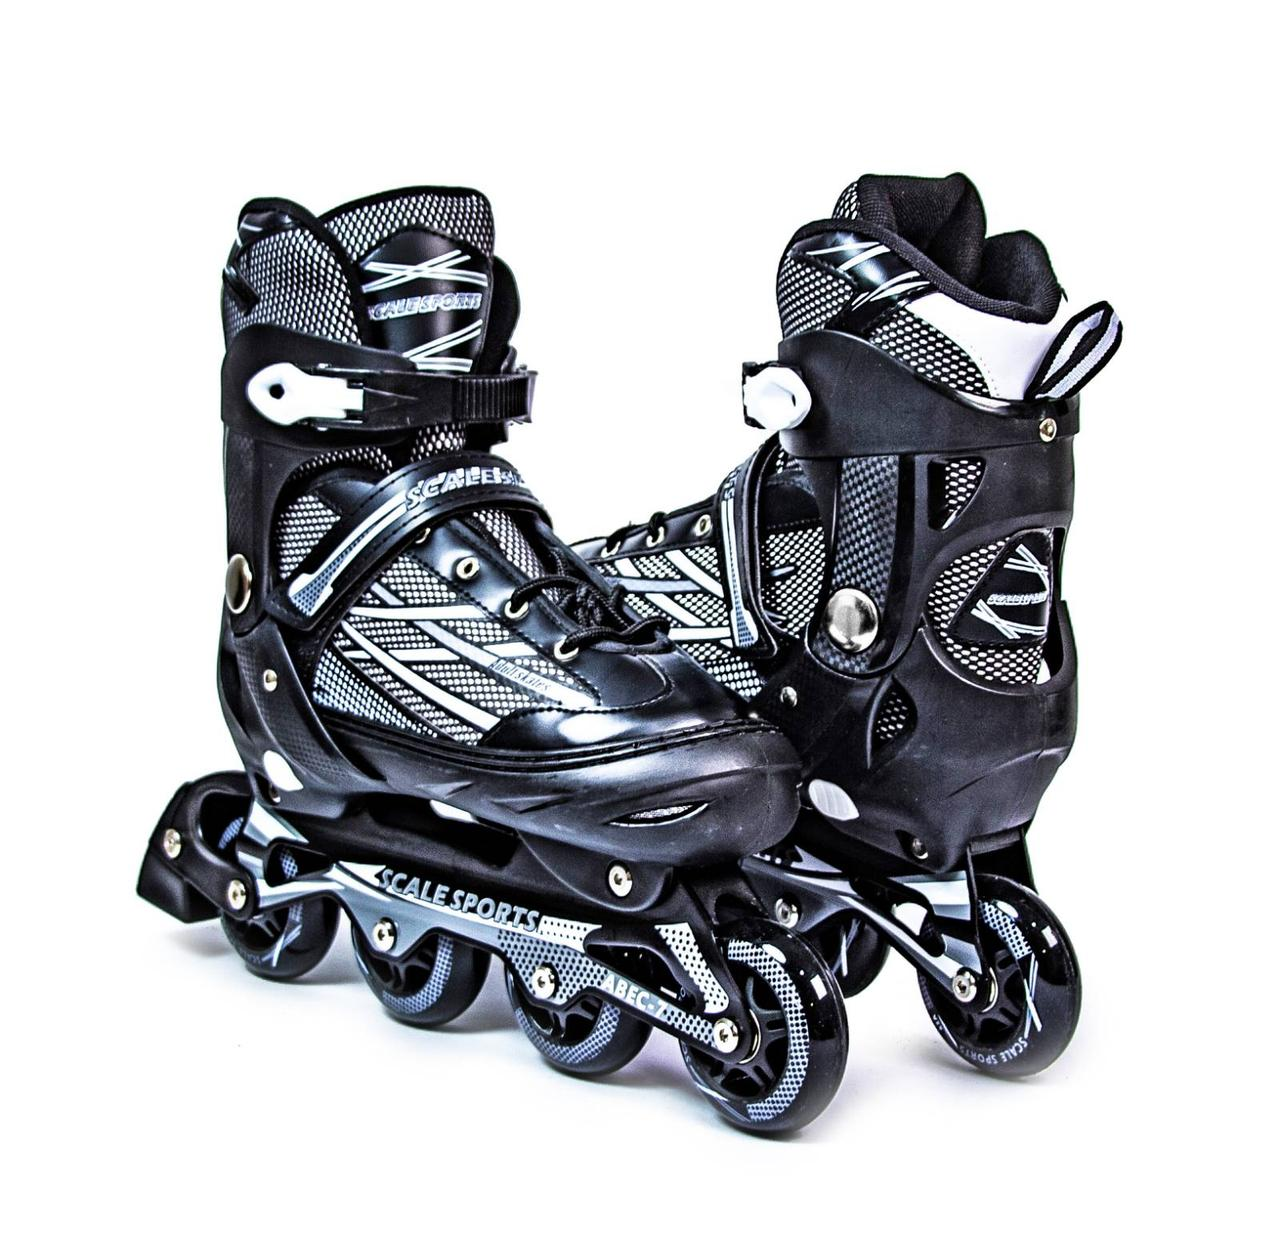 Ролики Scale Sports. Adult Skates. XL LF 935 Black 41-44